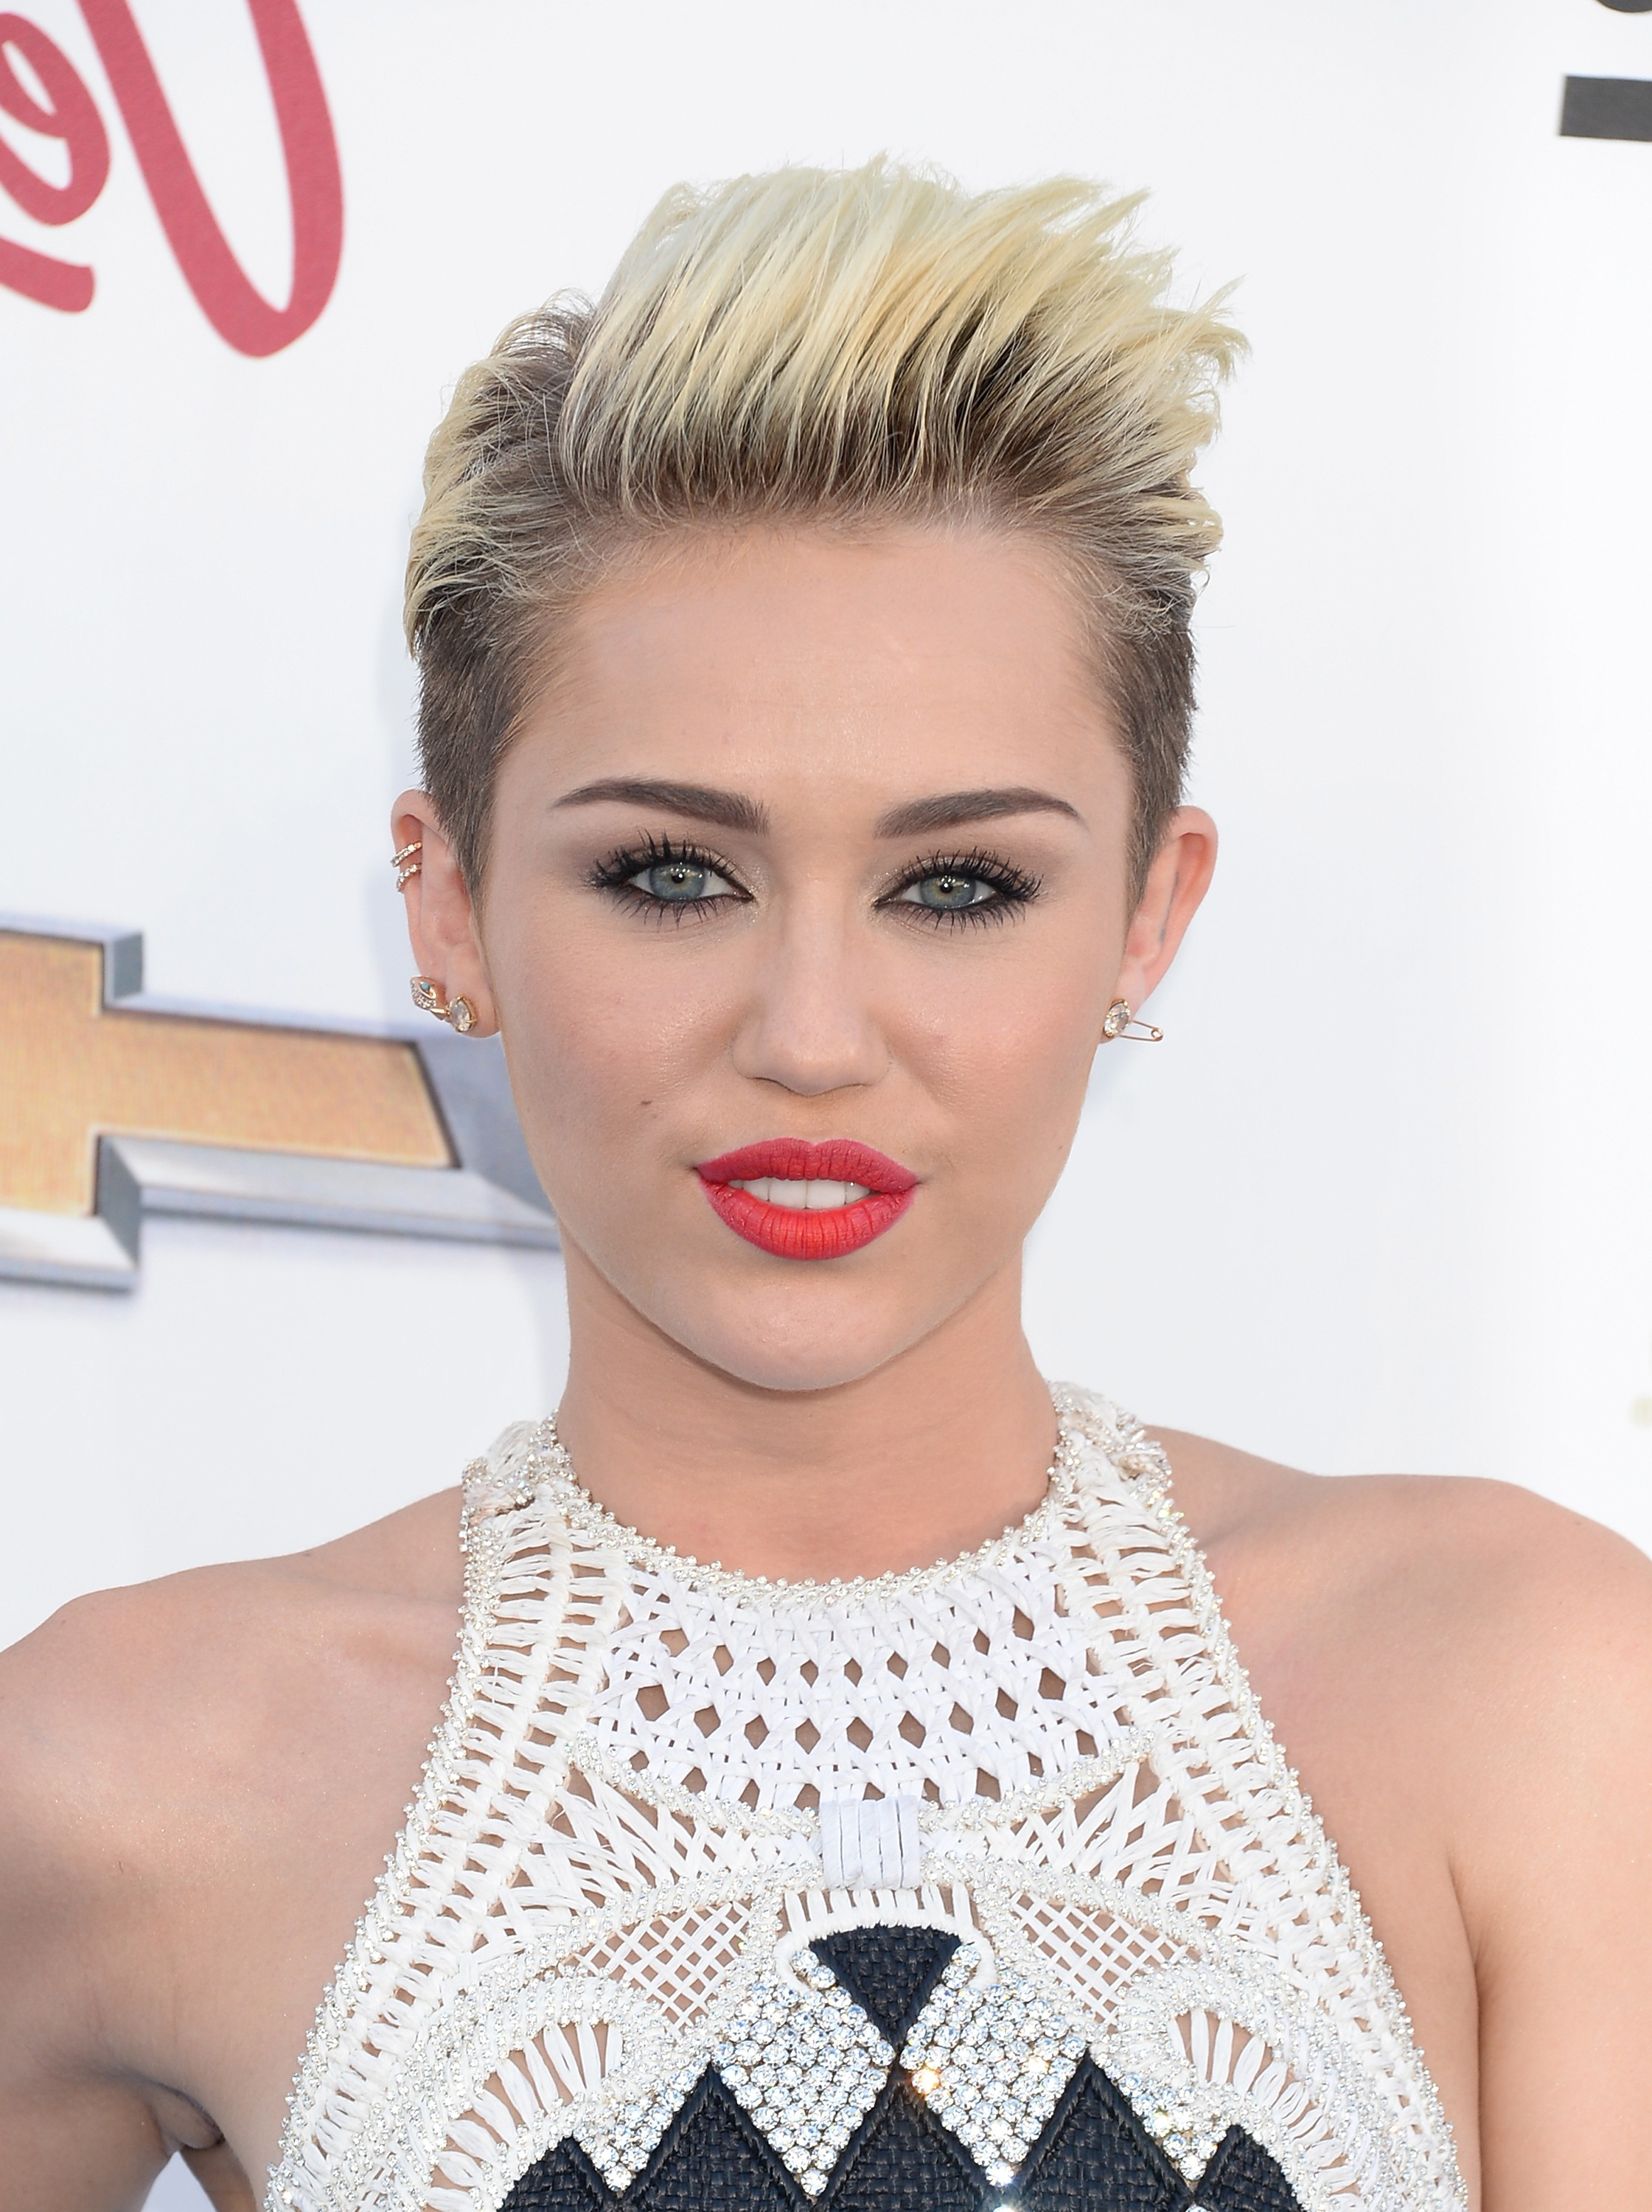 Pixie Haircut: 12 Ways To Style The Cut   Stylecaster Within Short Haircuts Like Miley Cyrus (View 4 of 25)